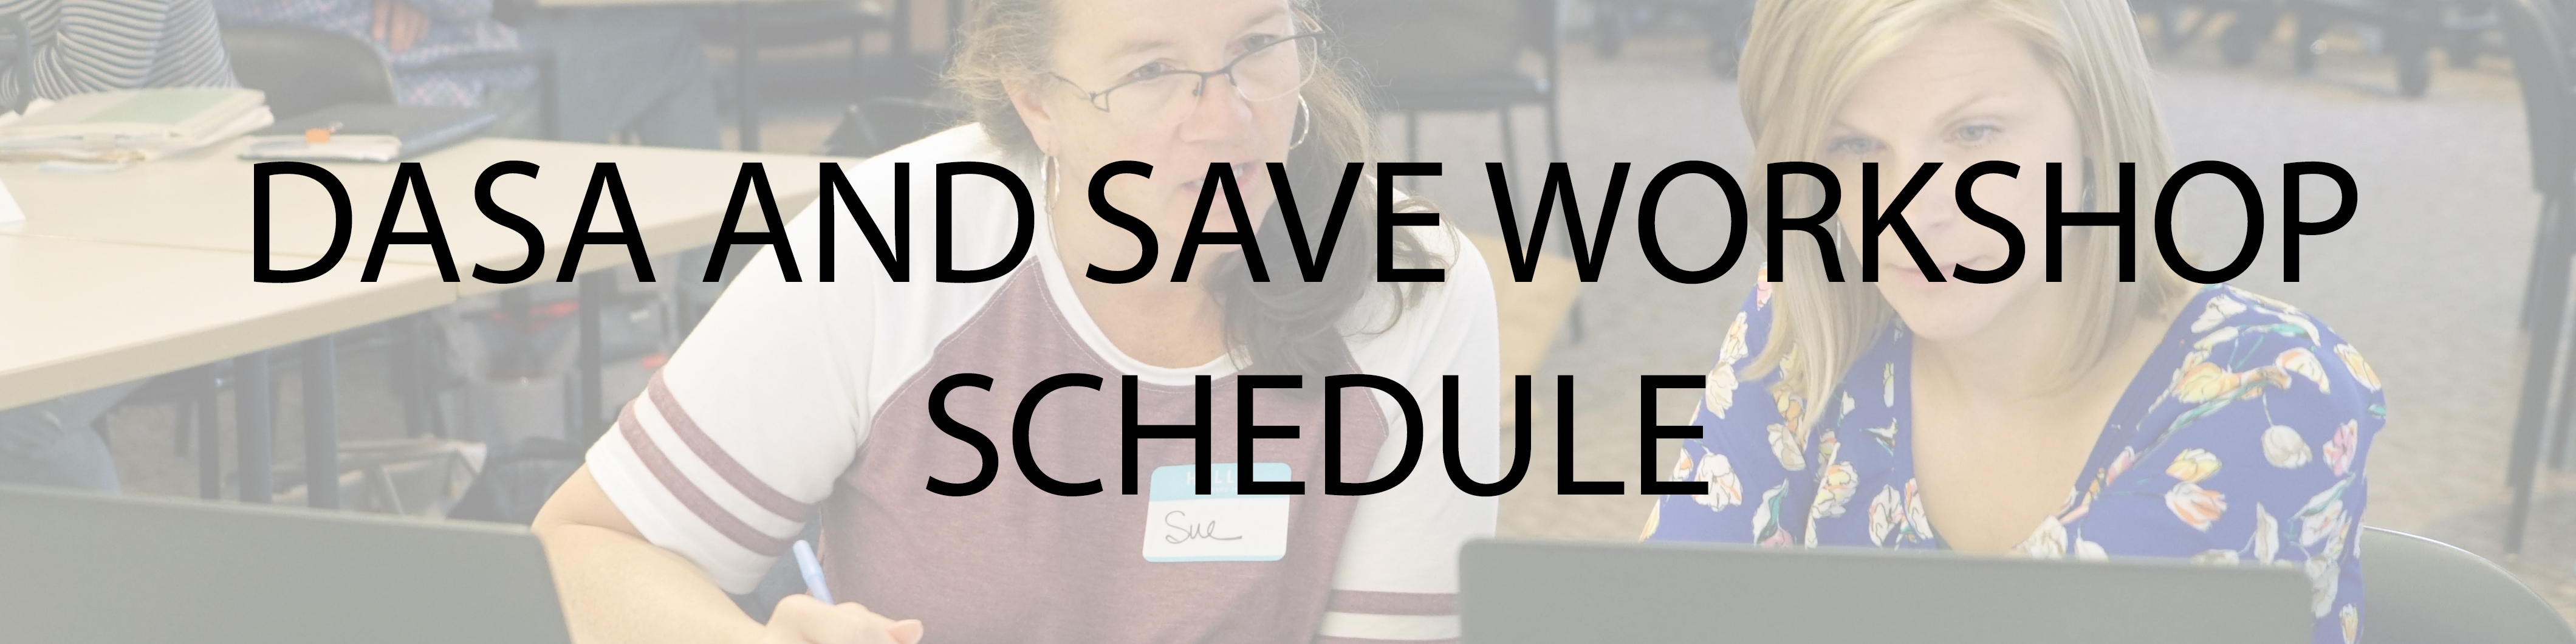 DASA and SAVE Workshop Schedule